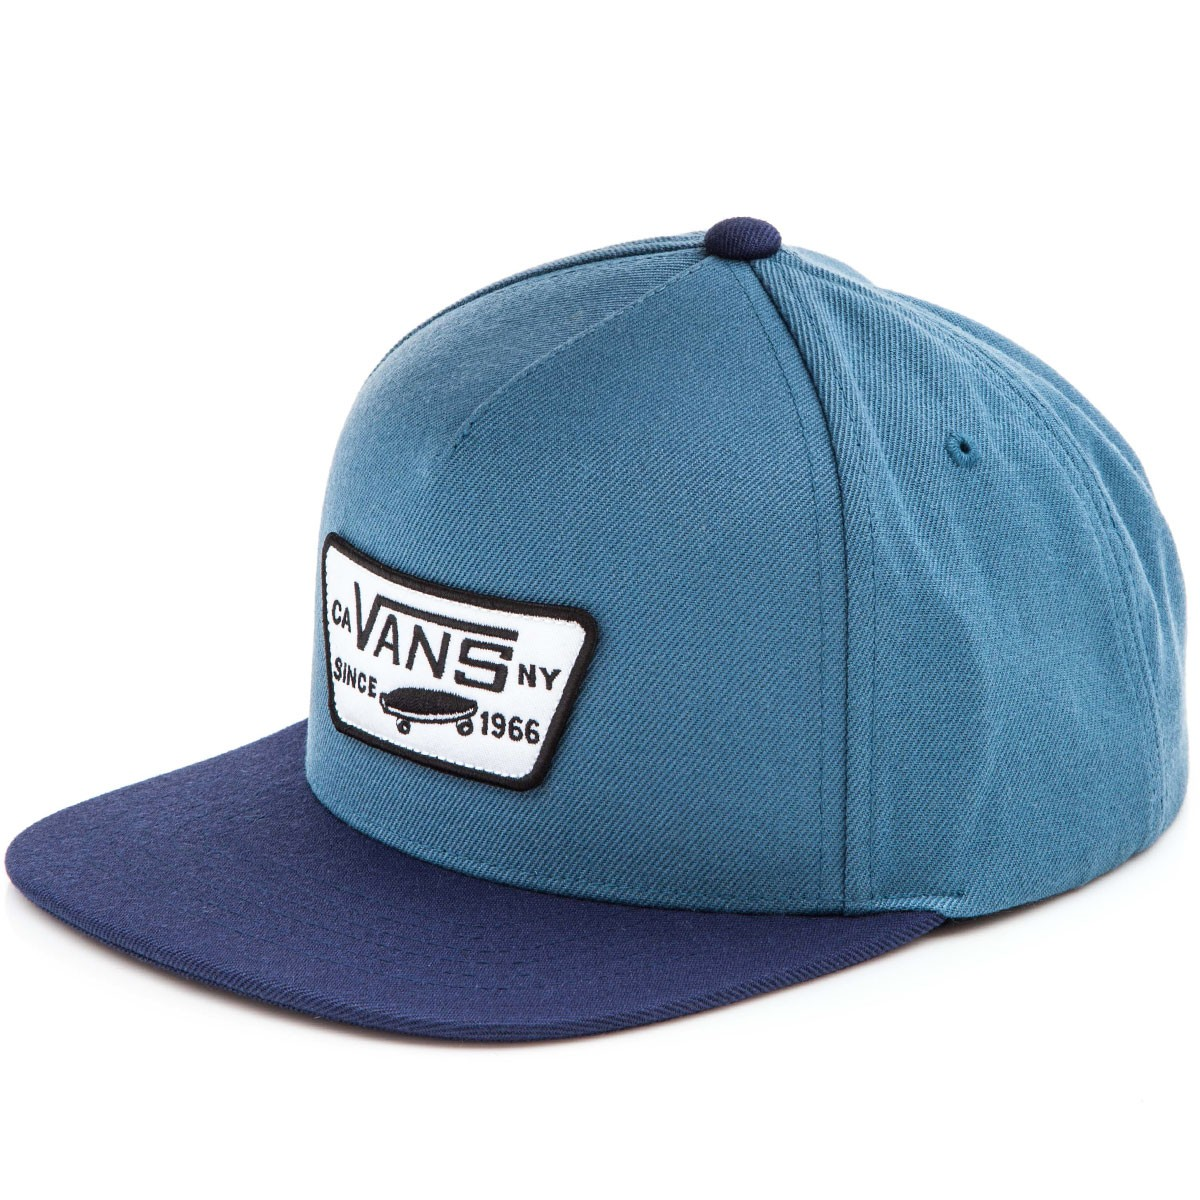 2ceed6a047 Vans Full Patch Snapback Hat